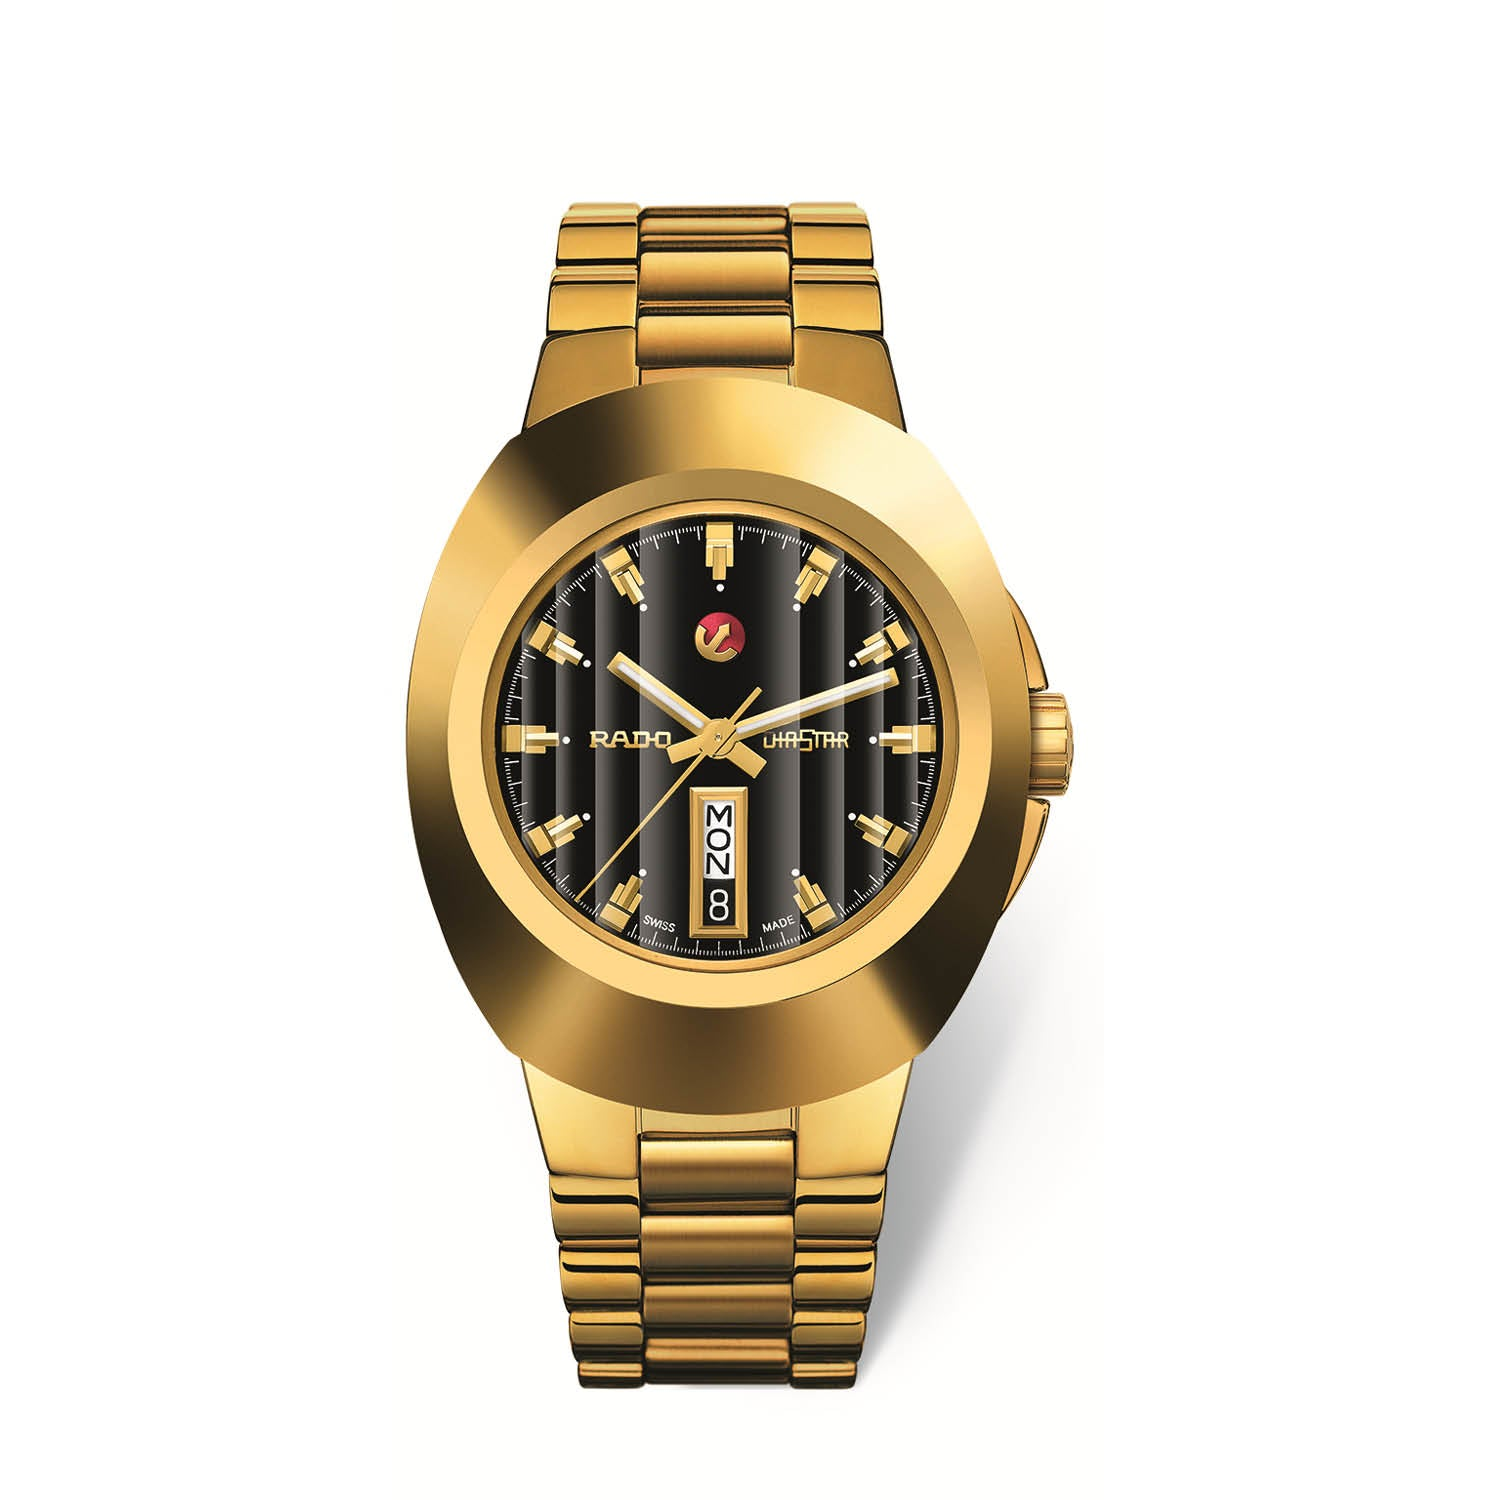 RADO Original XL watch, black dial, yellow gold PVD bracelet and CVD-coated hard metal case with D-Date R12999153